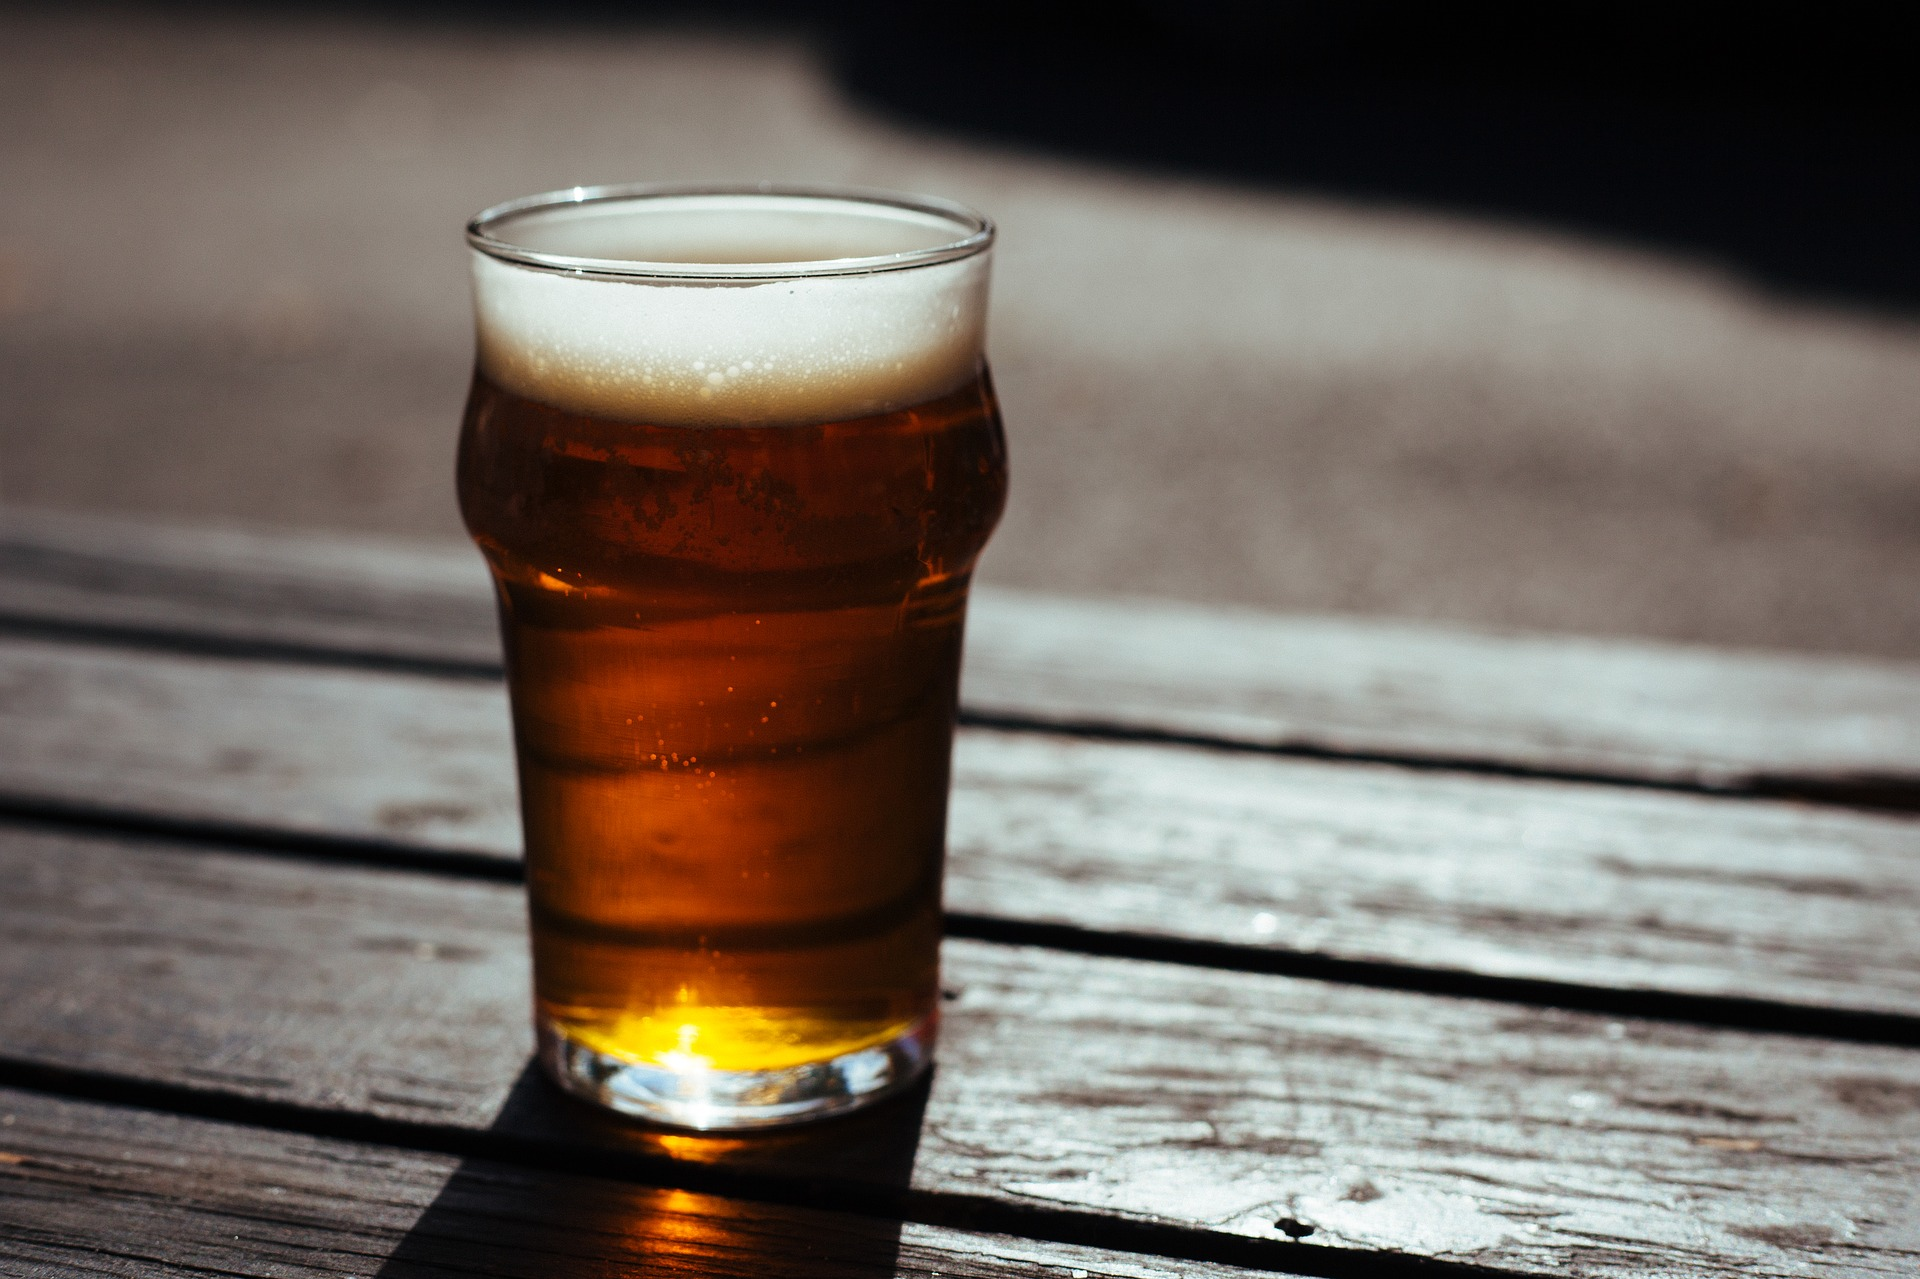 A pint of bitter on a wooden table in the sun